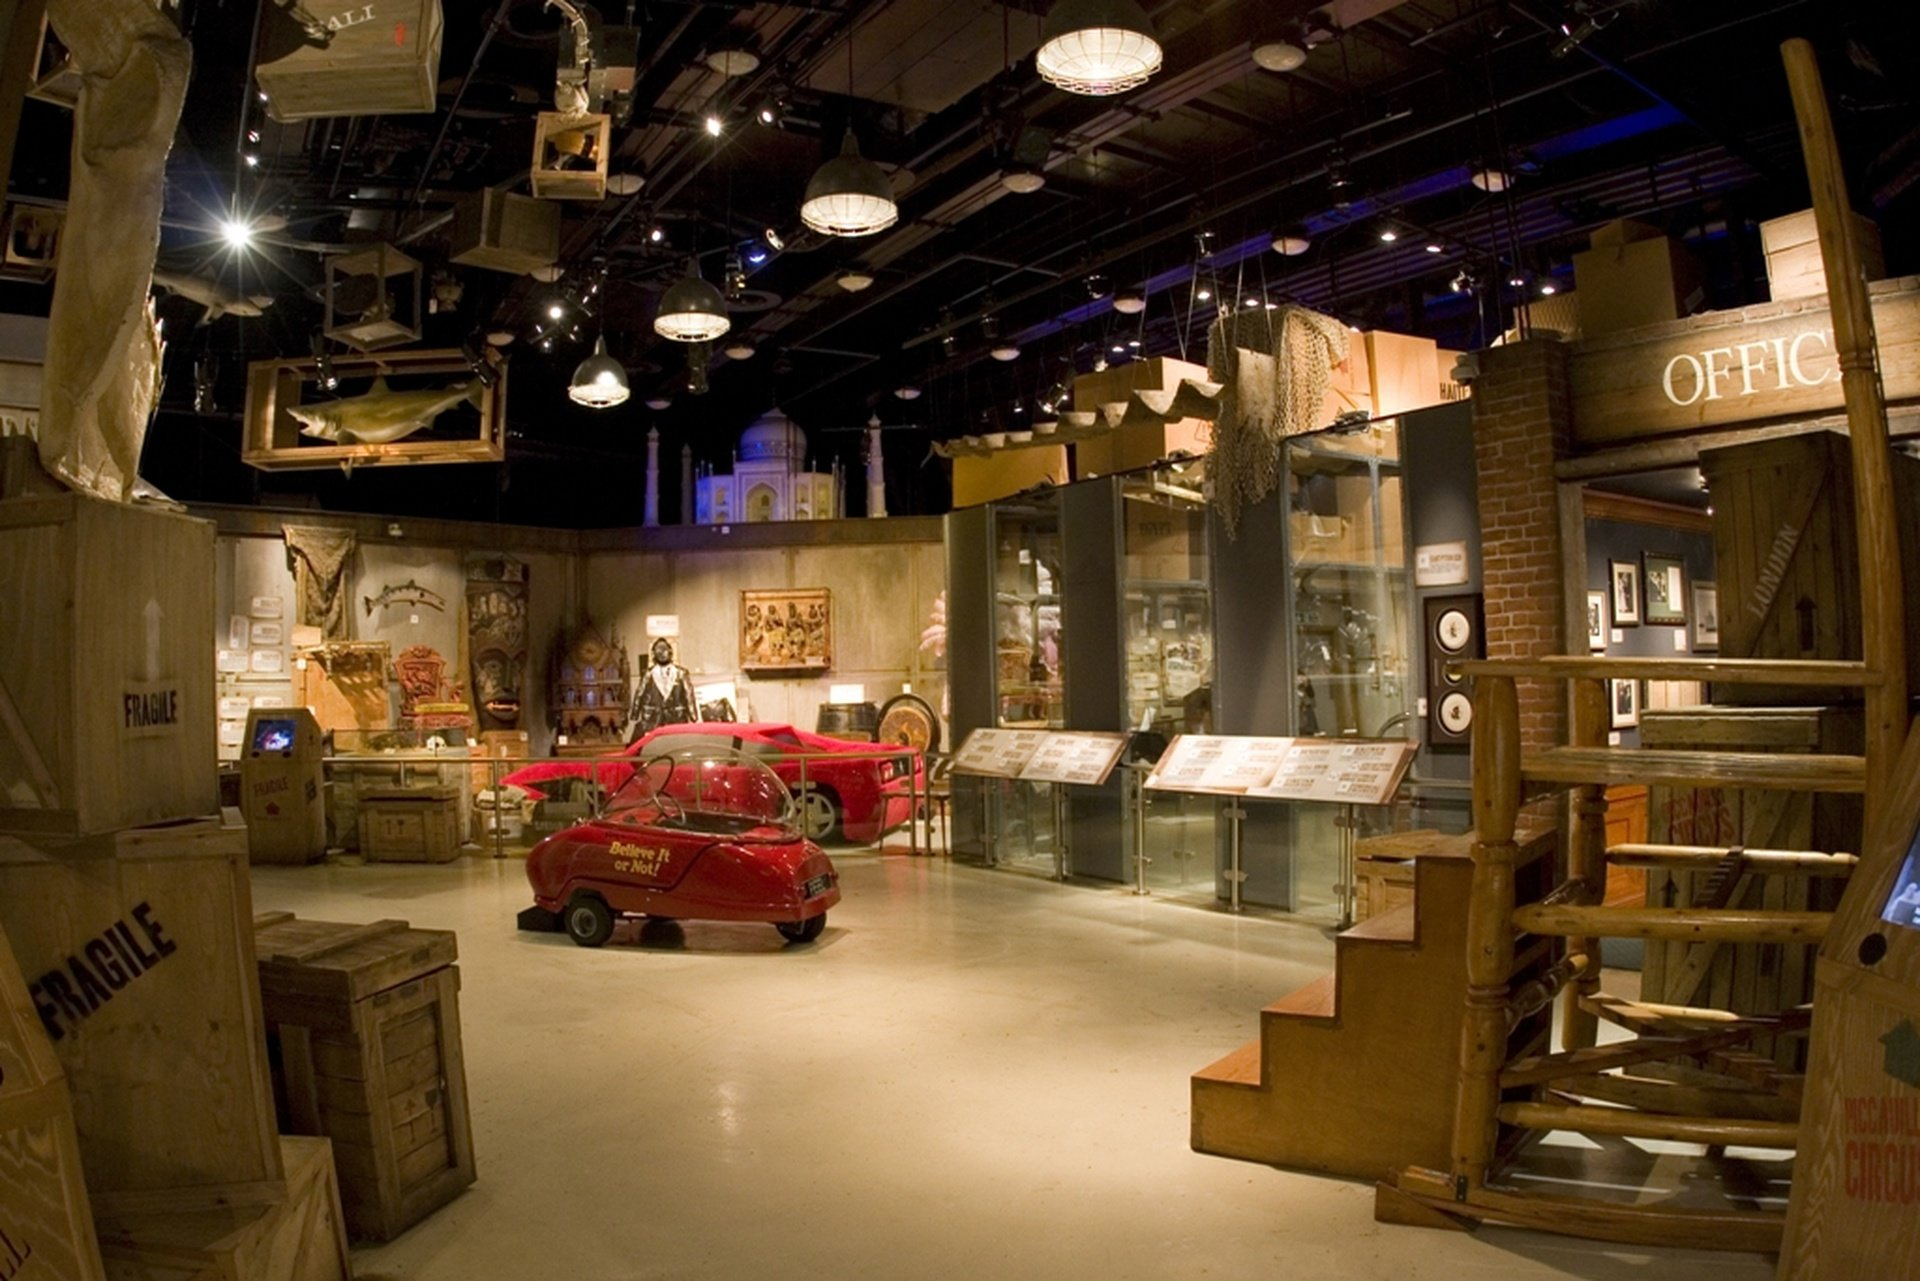 Londres corporate event venues Musée Ripley's Believe It Or Not image 0